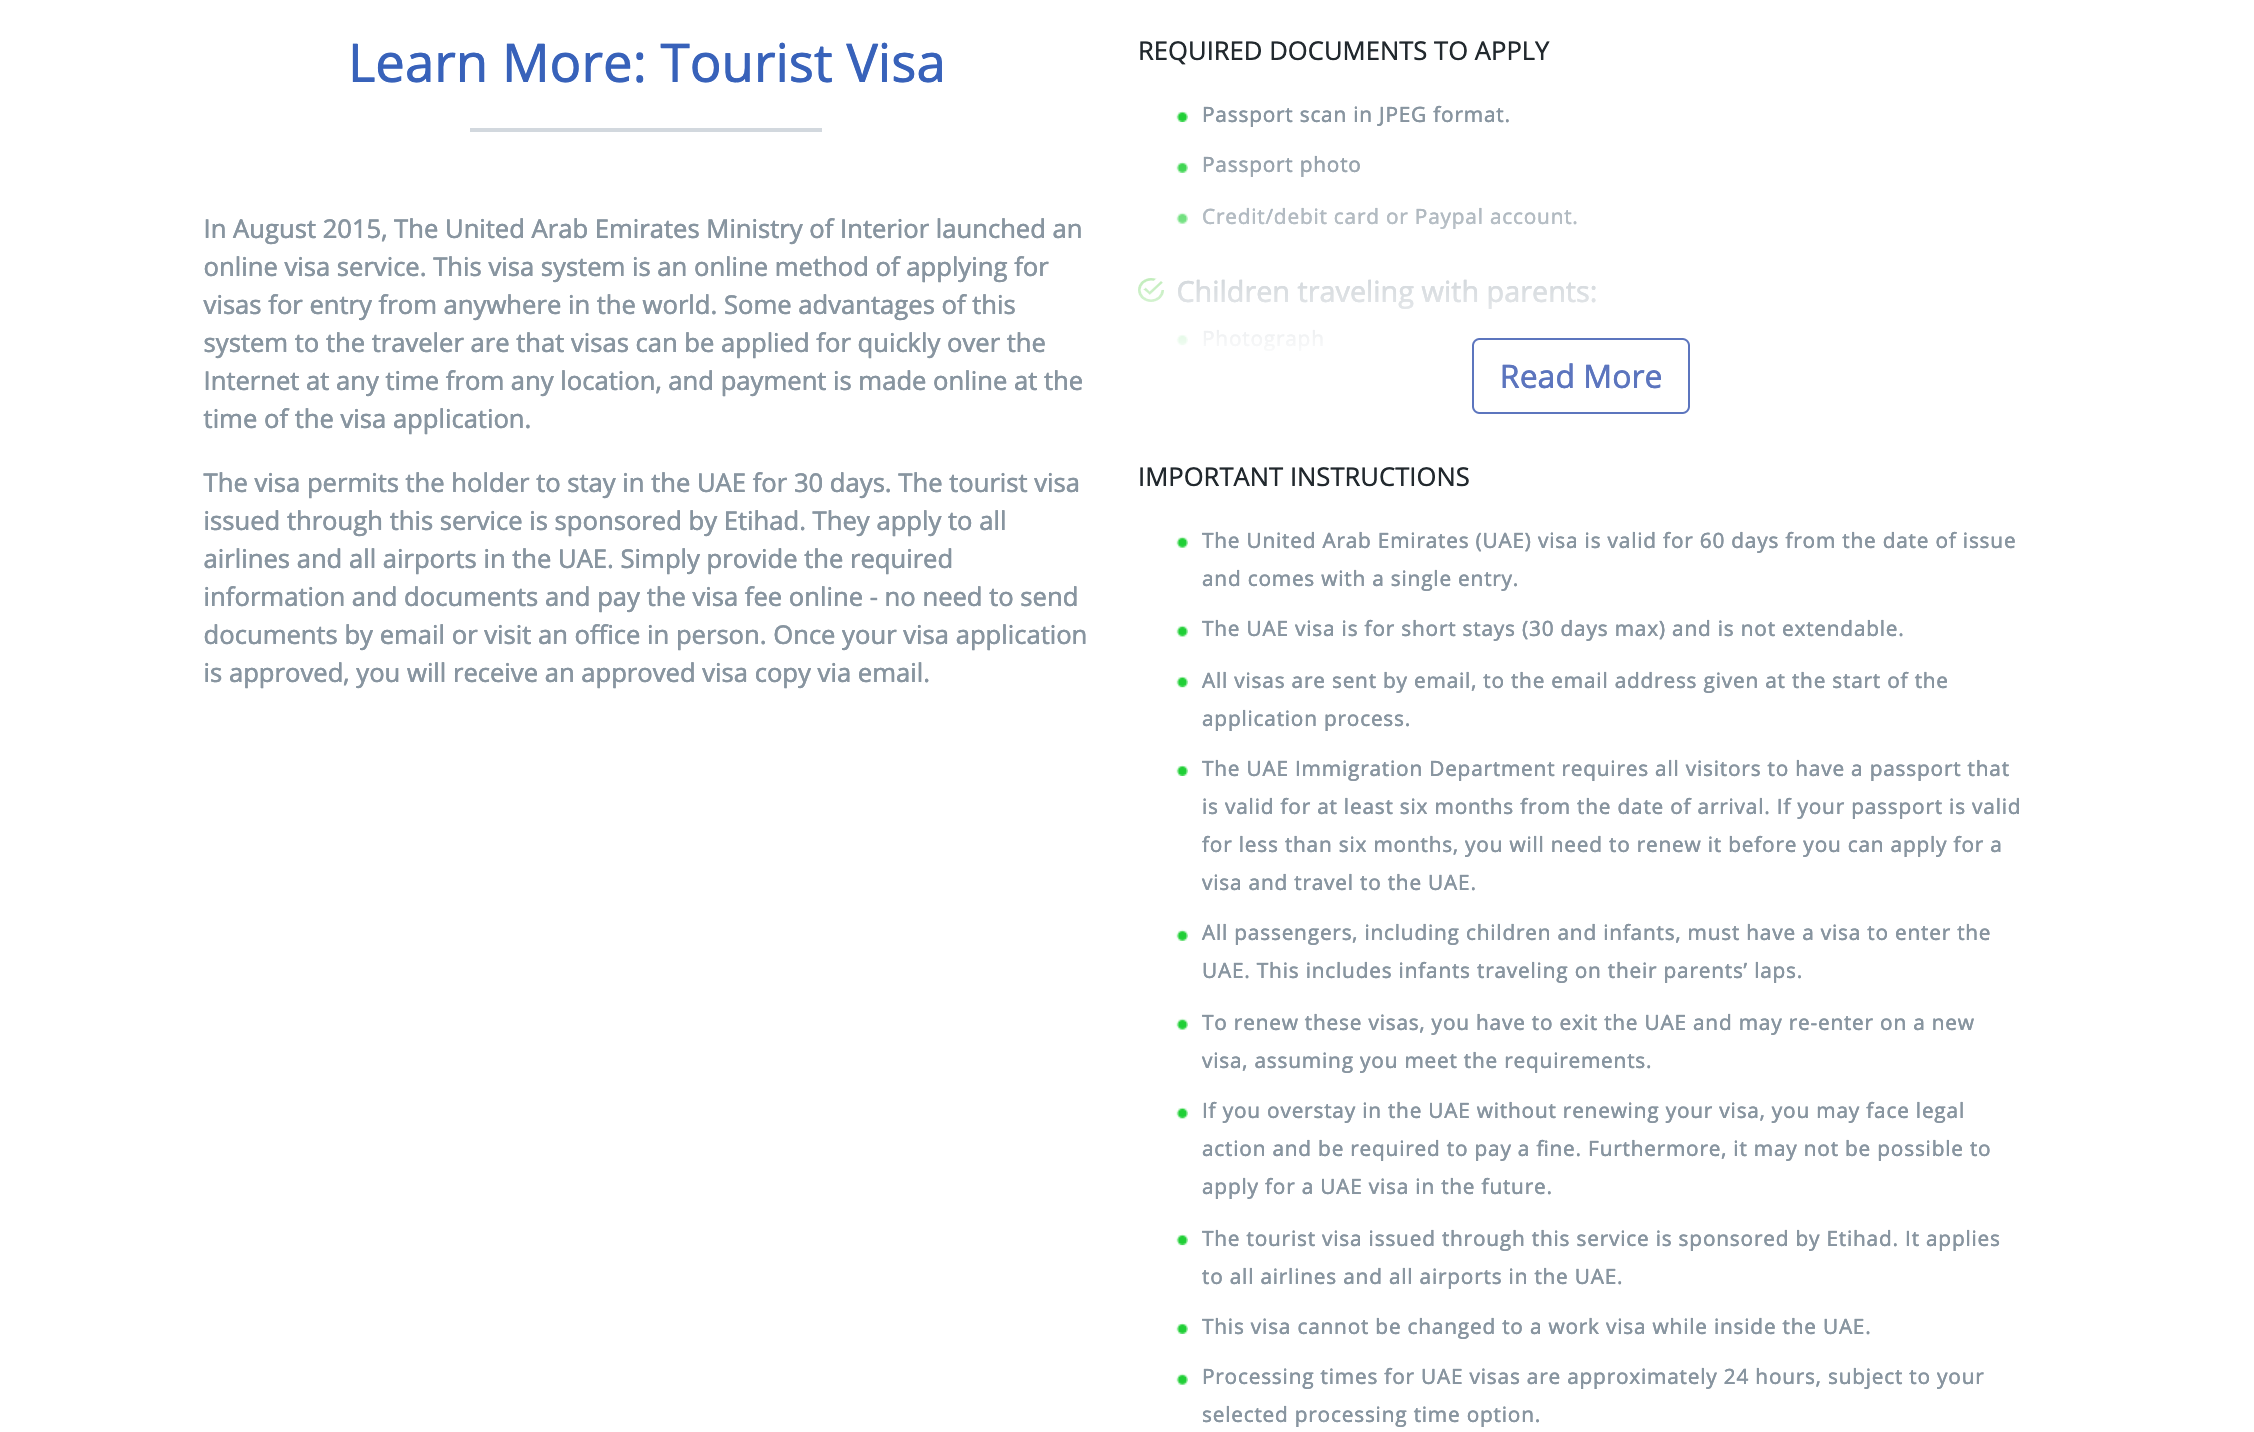 How To Get A Dubai Or Uae Tourist Visa For Philippines Passport Holders